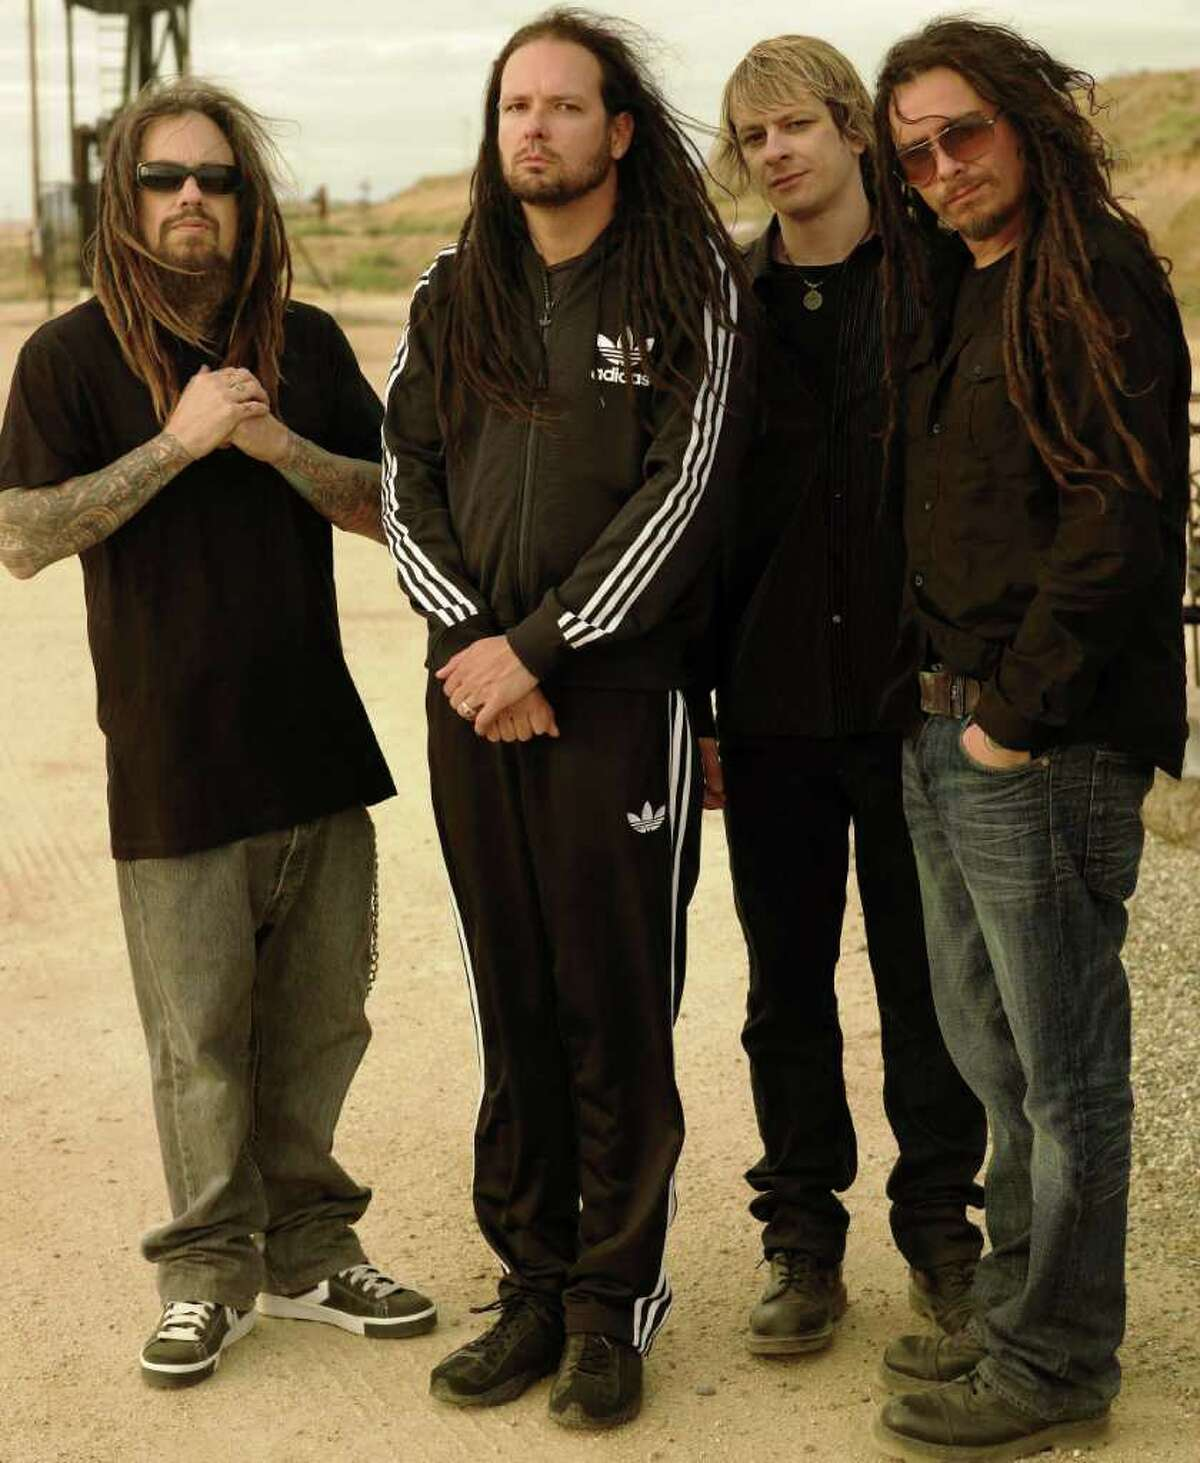 Korn (from left) is Fieldy, Jonathan Davis, Ray Luzier and Munky.